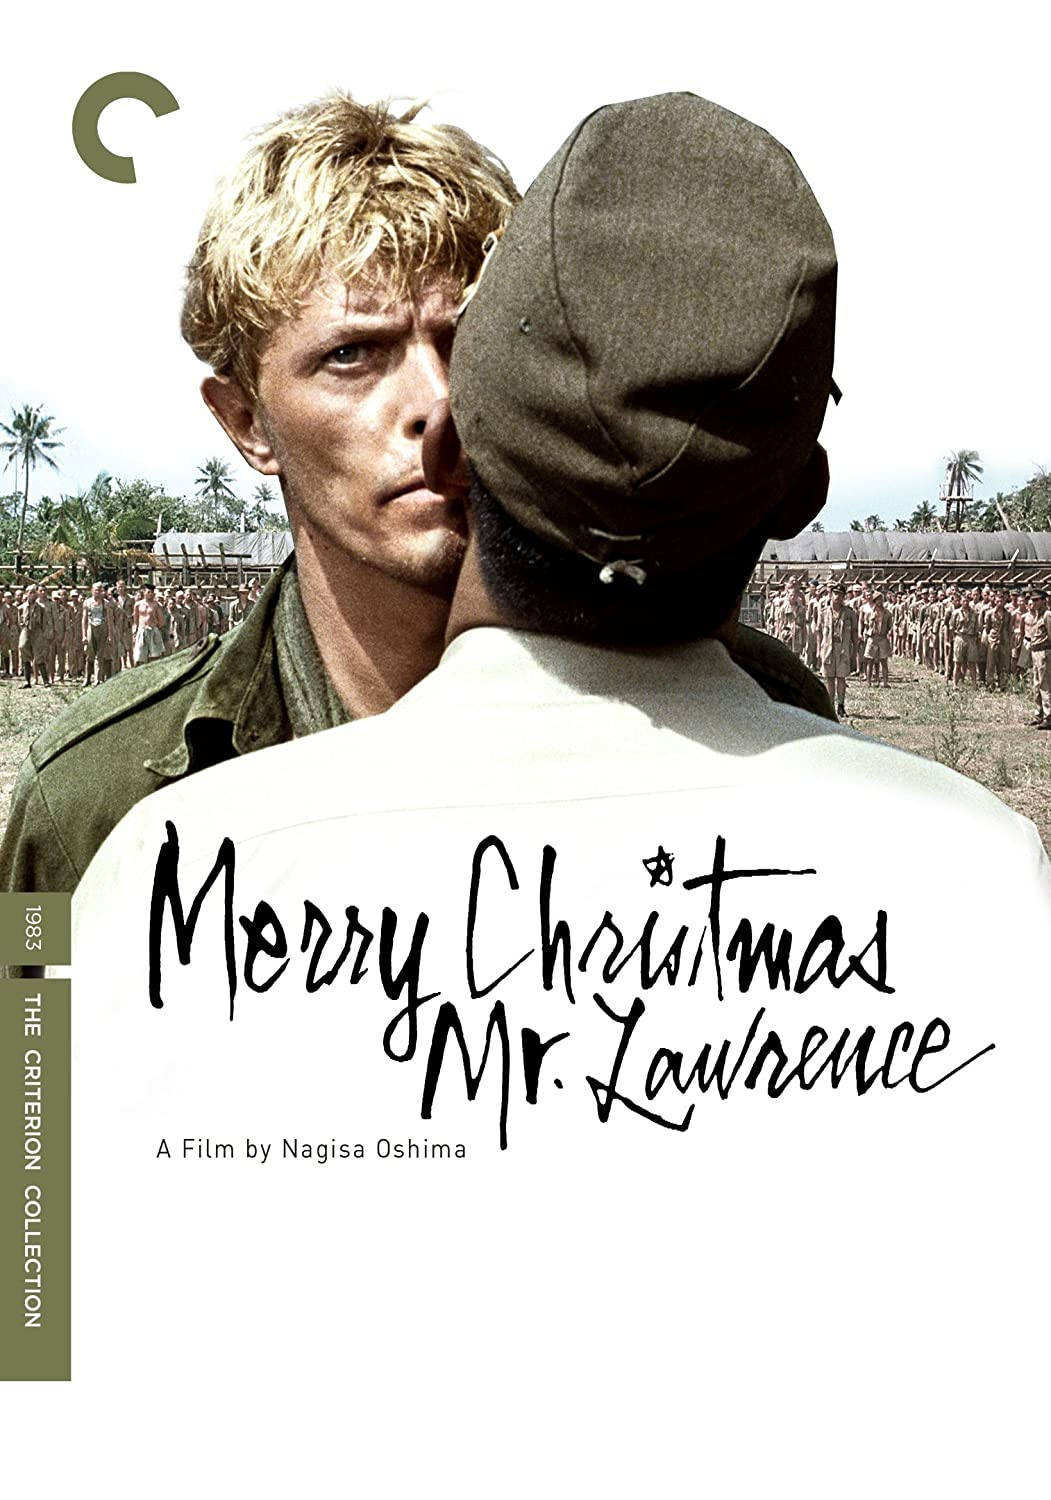 Amazon.com: Merry Christmas Mr. Lawrence (The Criterion Collection ...